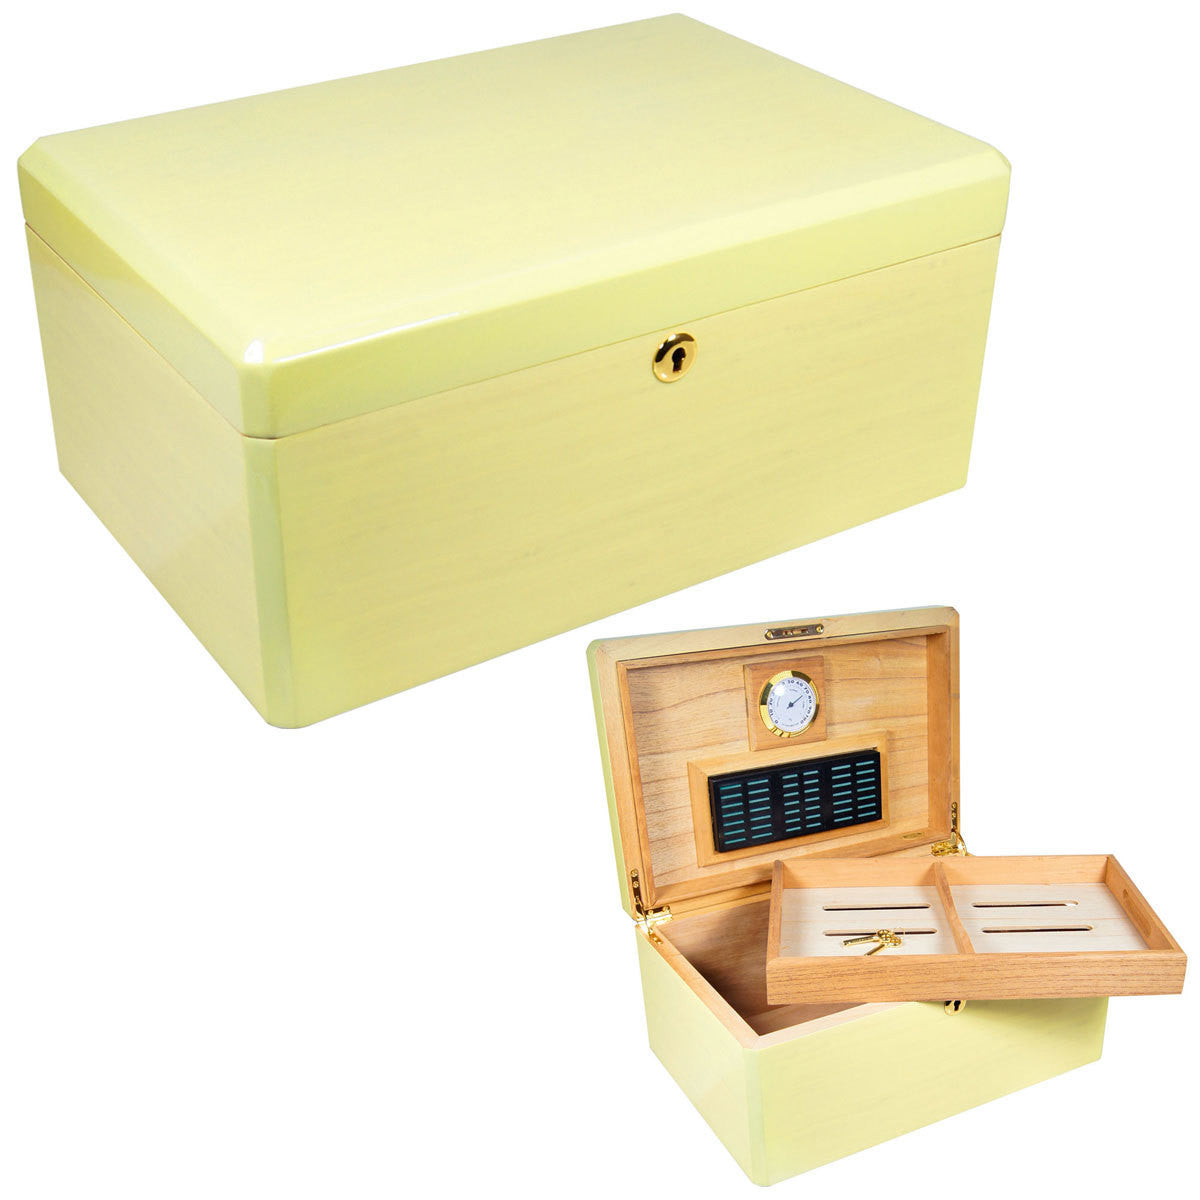 Colores Blanco White Citron Humidors for 100 Cigars - Humidors Wholesaler